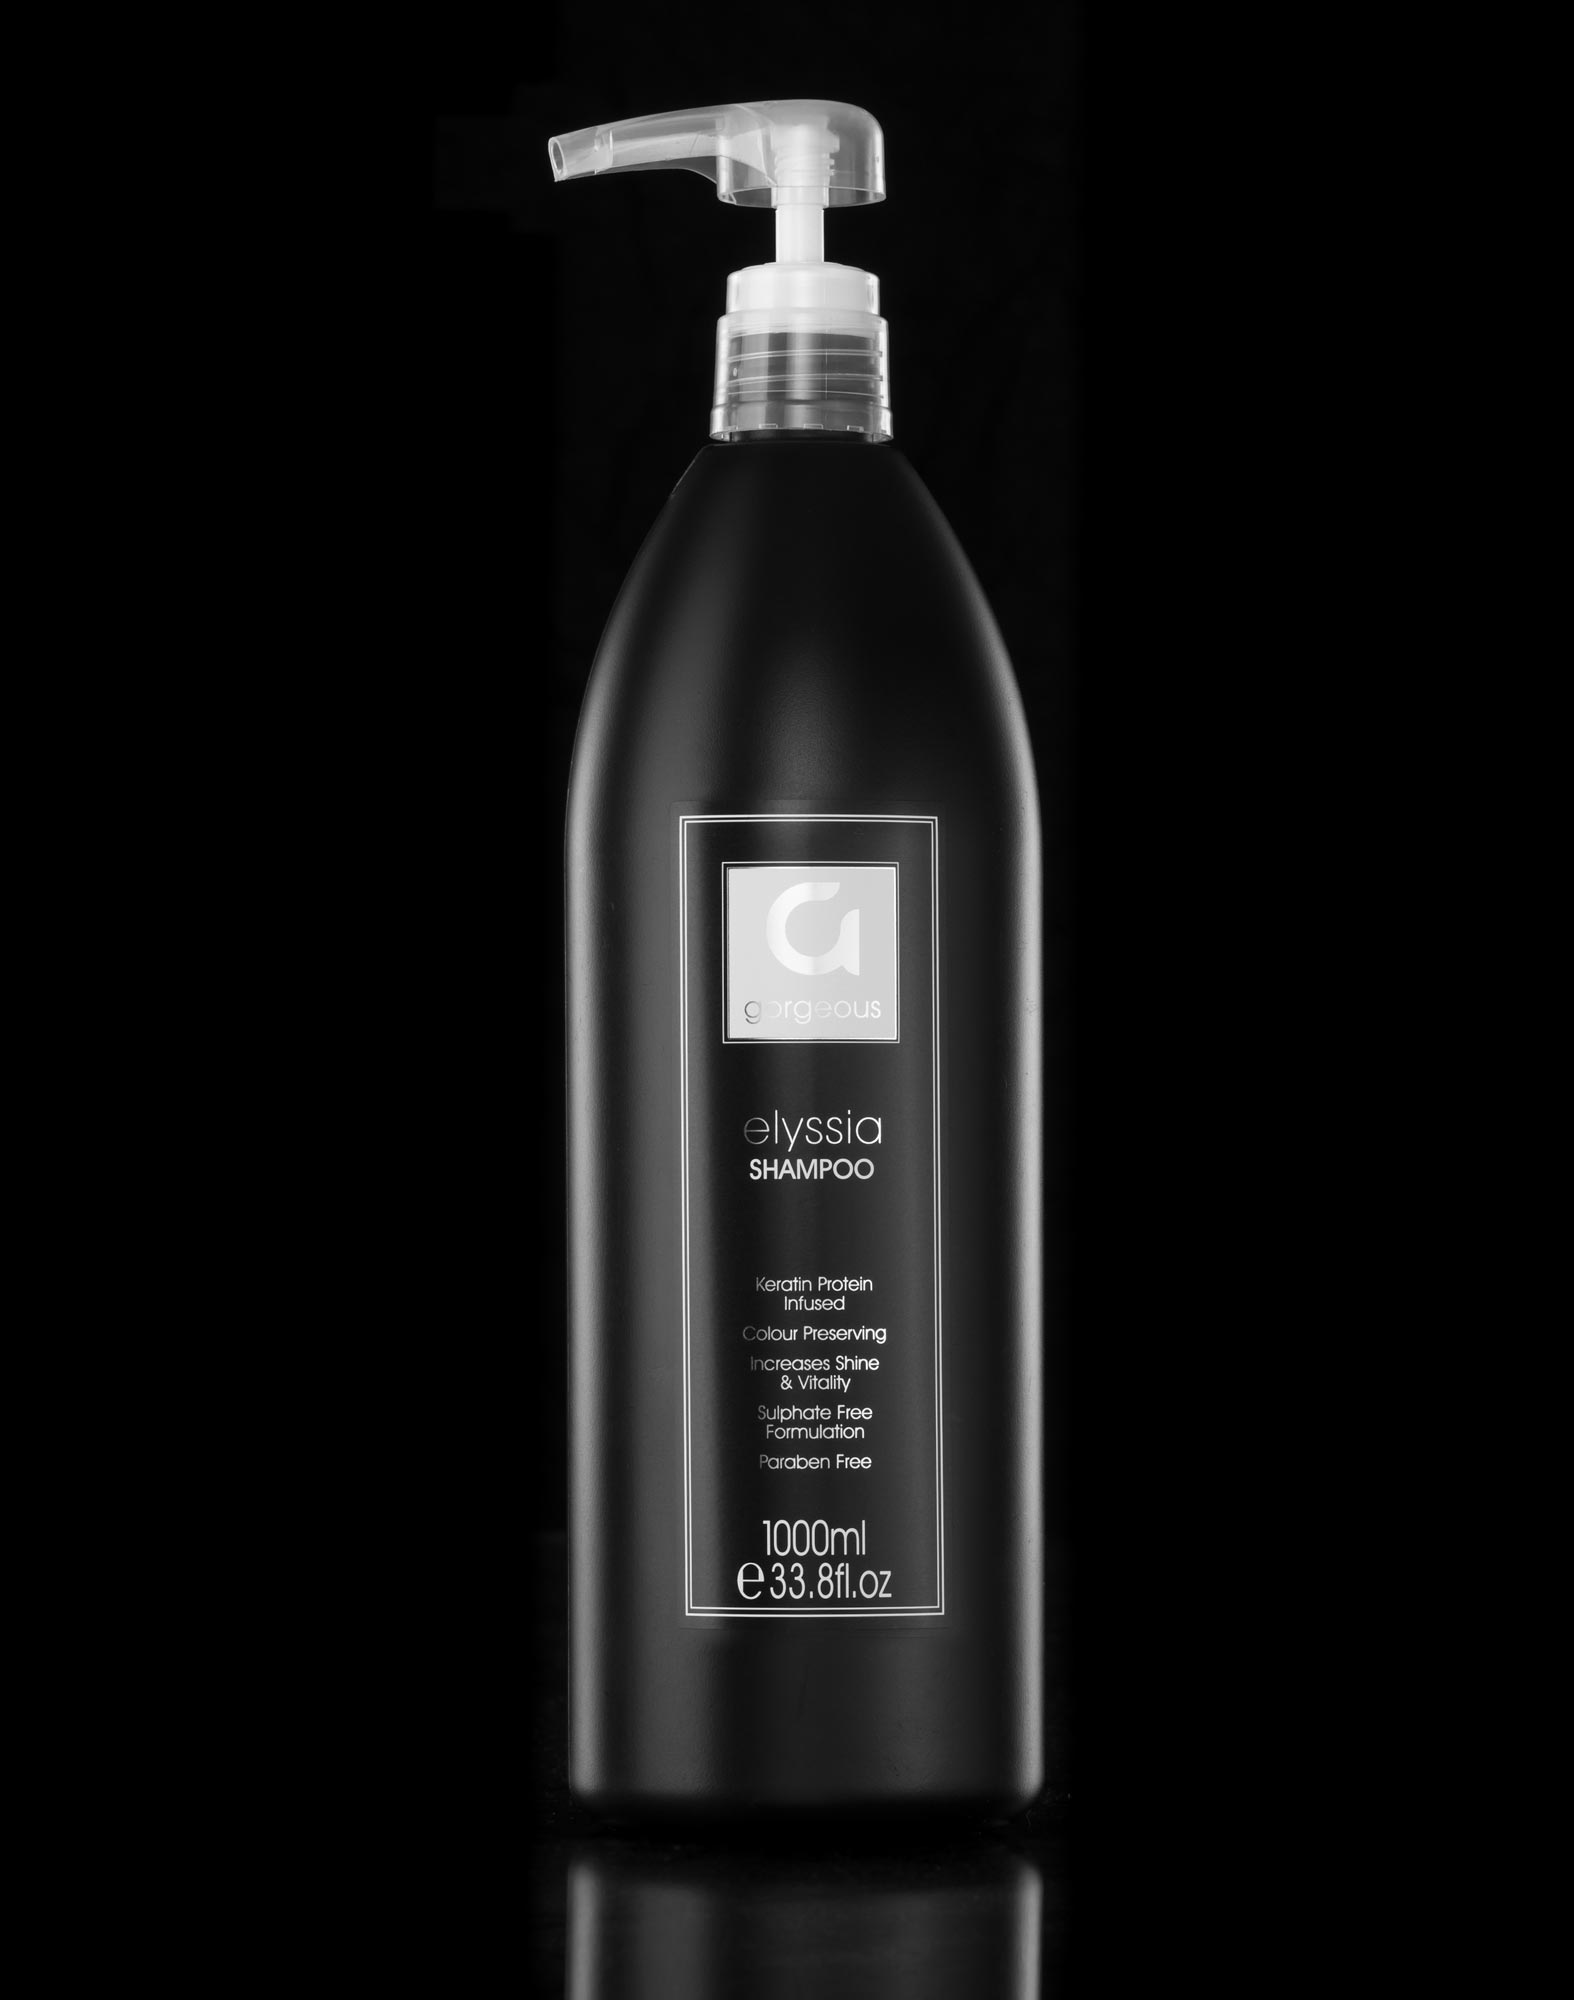 Backwash Elyssia Shampoo by Gorgeous London